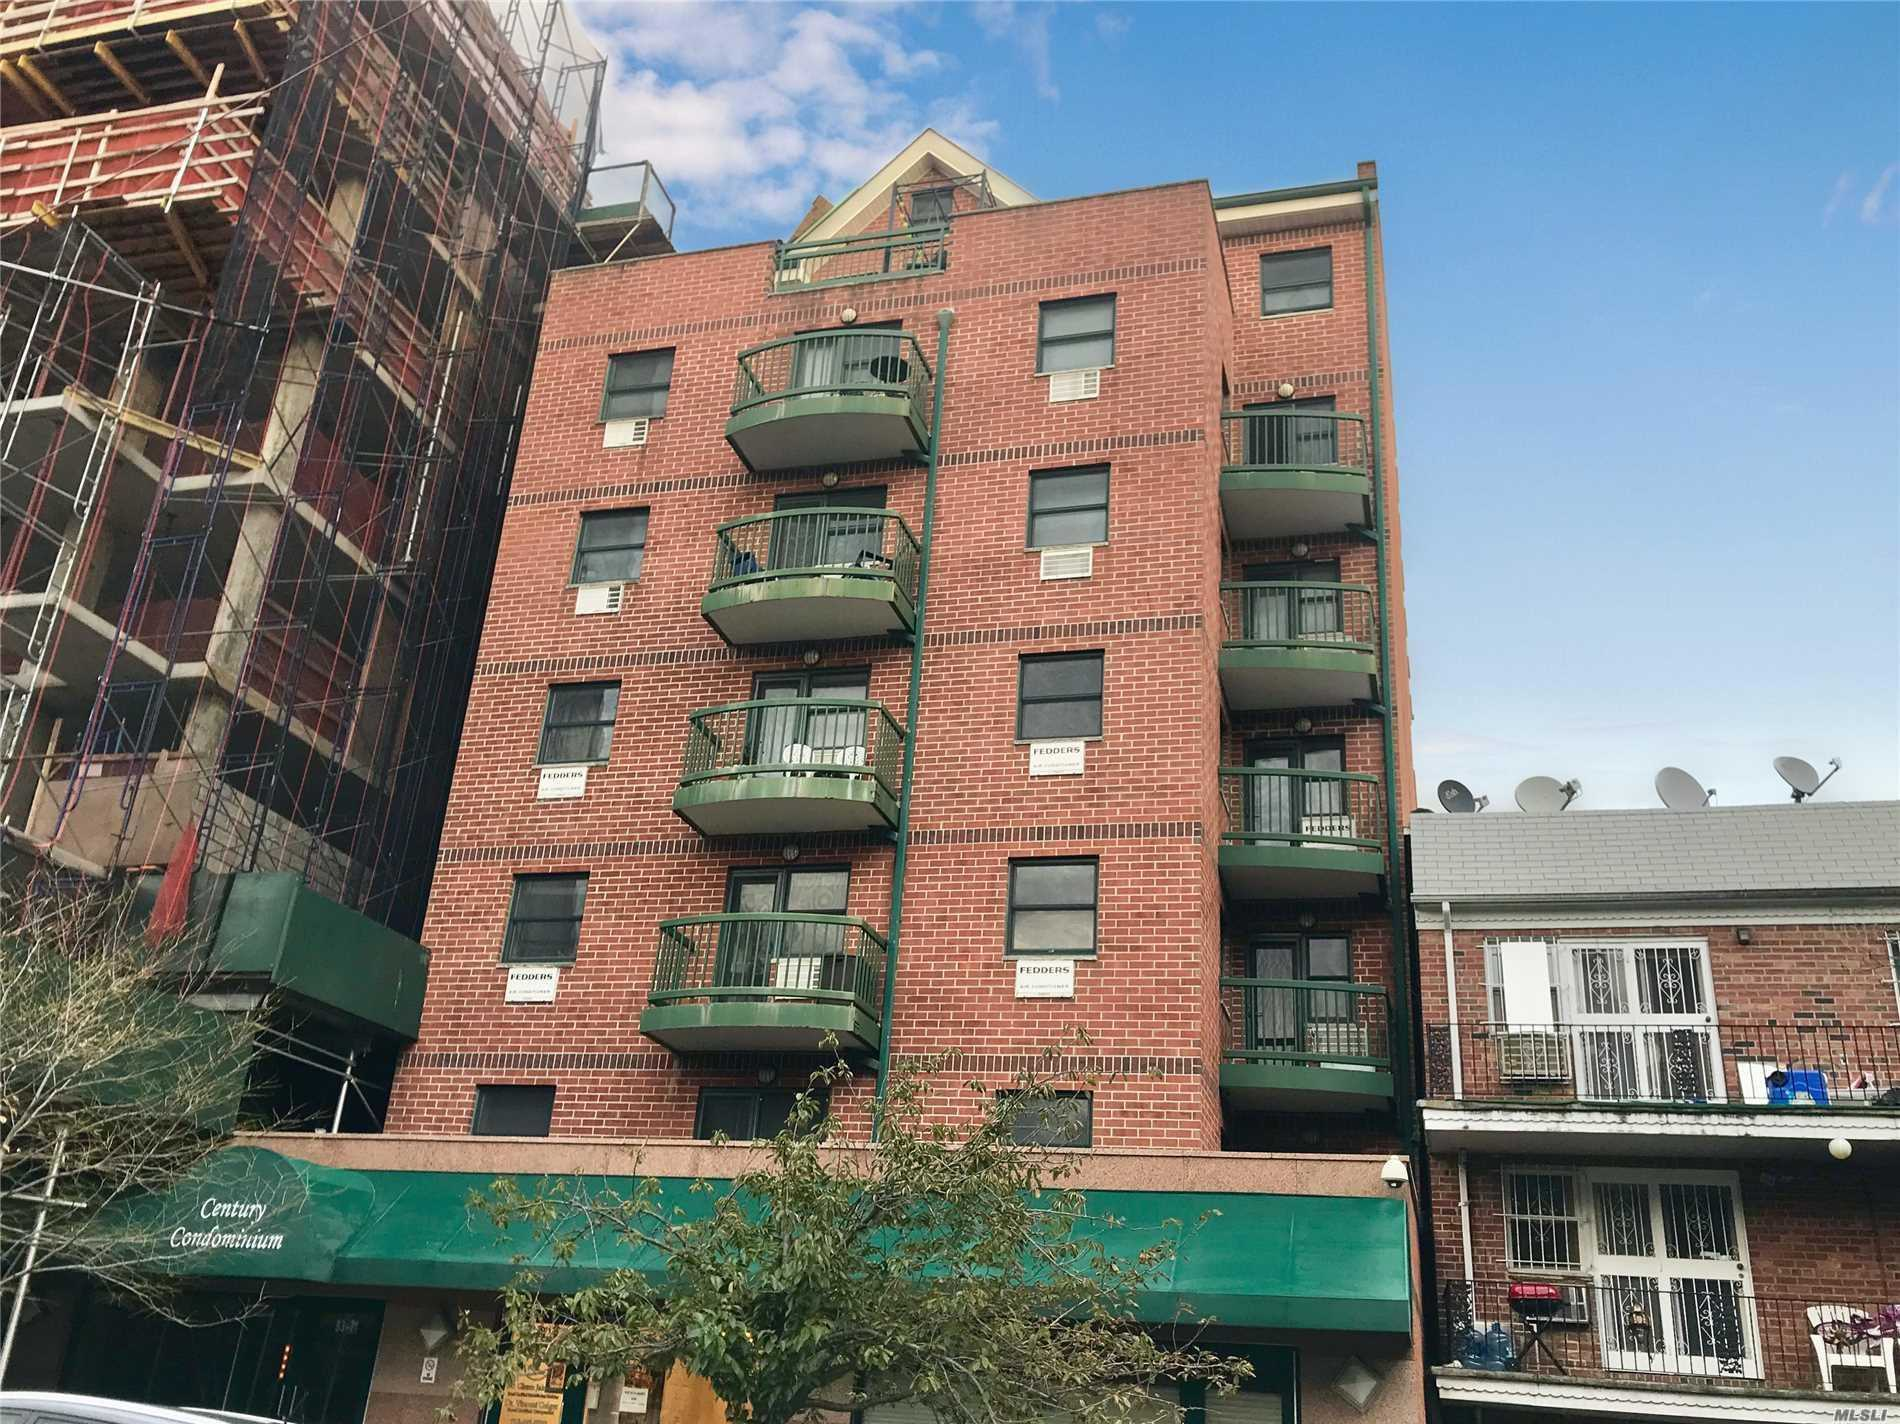 Spacious 13' High Ceiling Condo Studio Apartment In Prime Area Of Kew Gardens Ny. Unit Includes An Indoor Parking Space. Features Eat-In-Kitchen / Maple Cabinetry, Counter Top, Marble Bathroom, Hardwood Floor And Balcony Of Living Room, Bright & Sunny. 24 Hr Camera Security Building, Laundry In Basement.